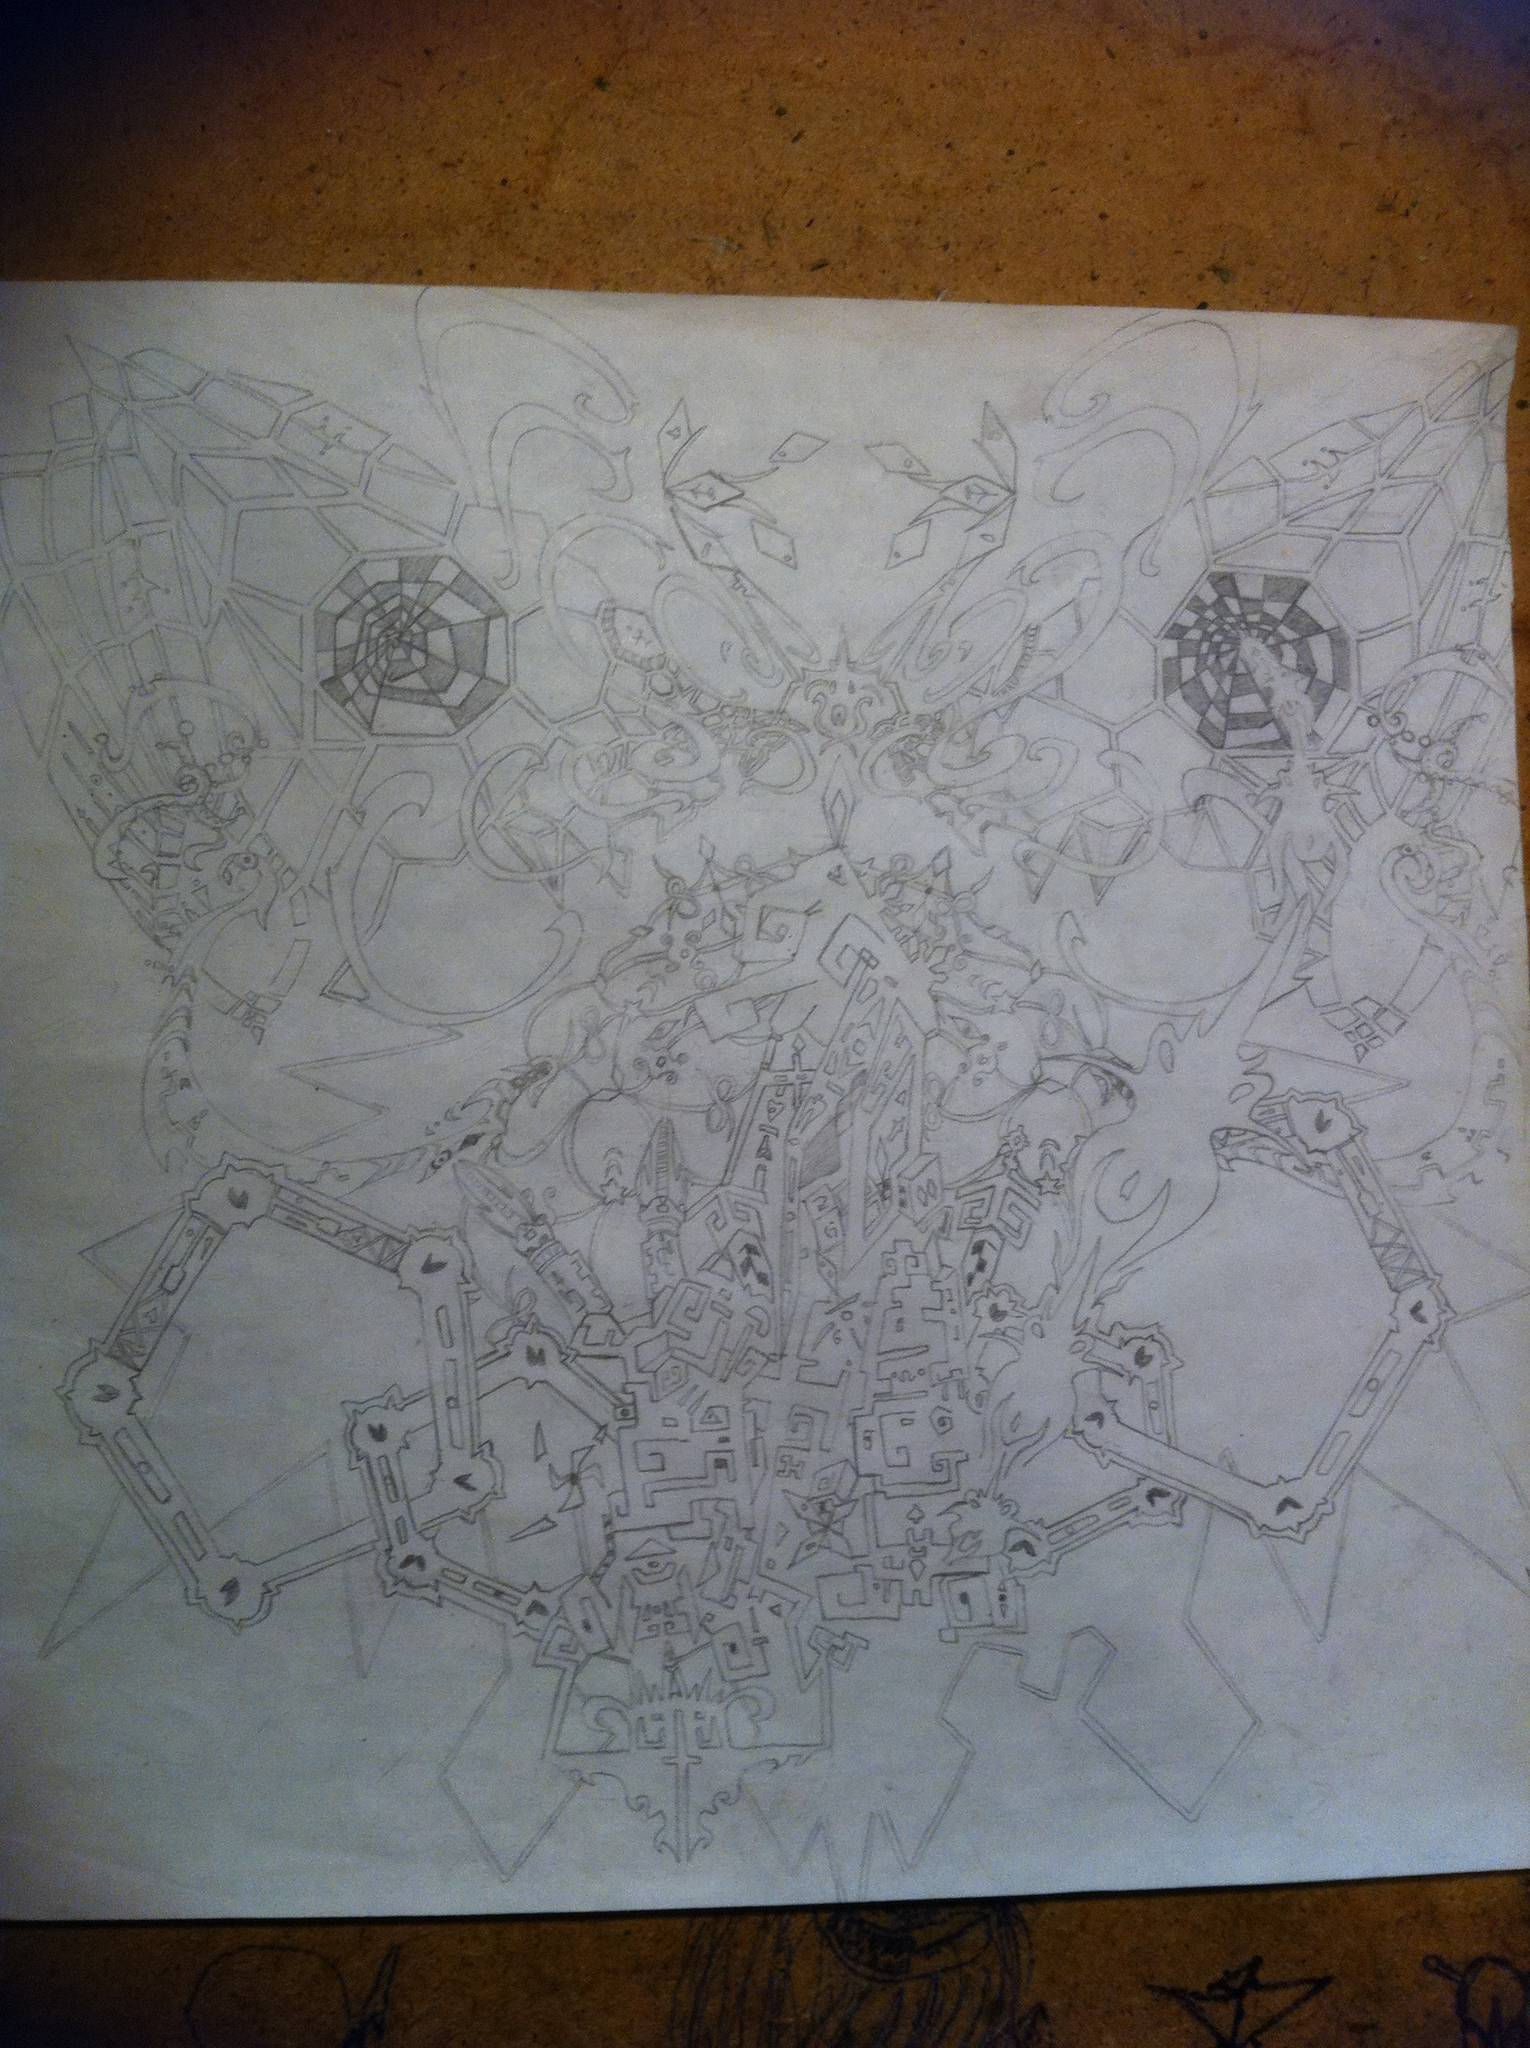 New Dmt Trip Drawing The Psychedelic Experience Shroomery